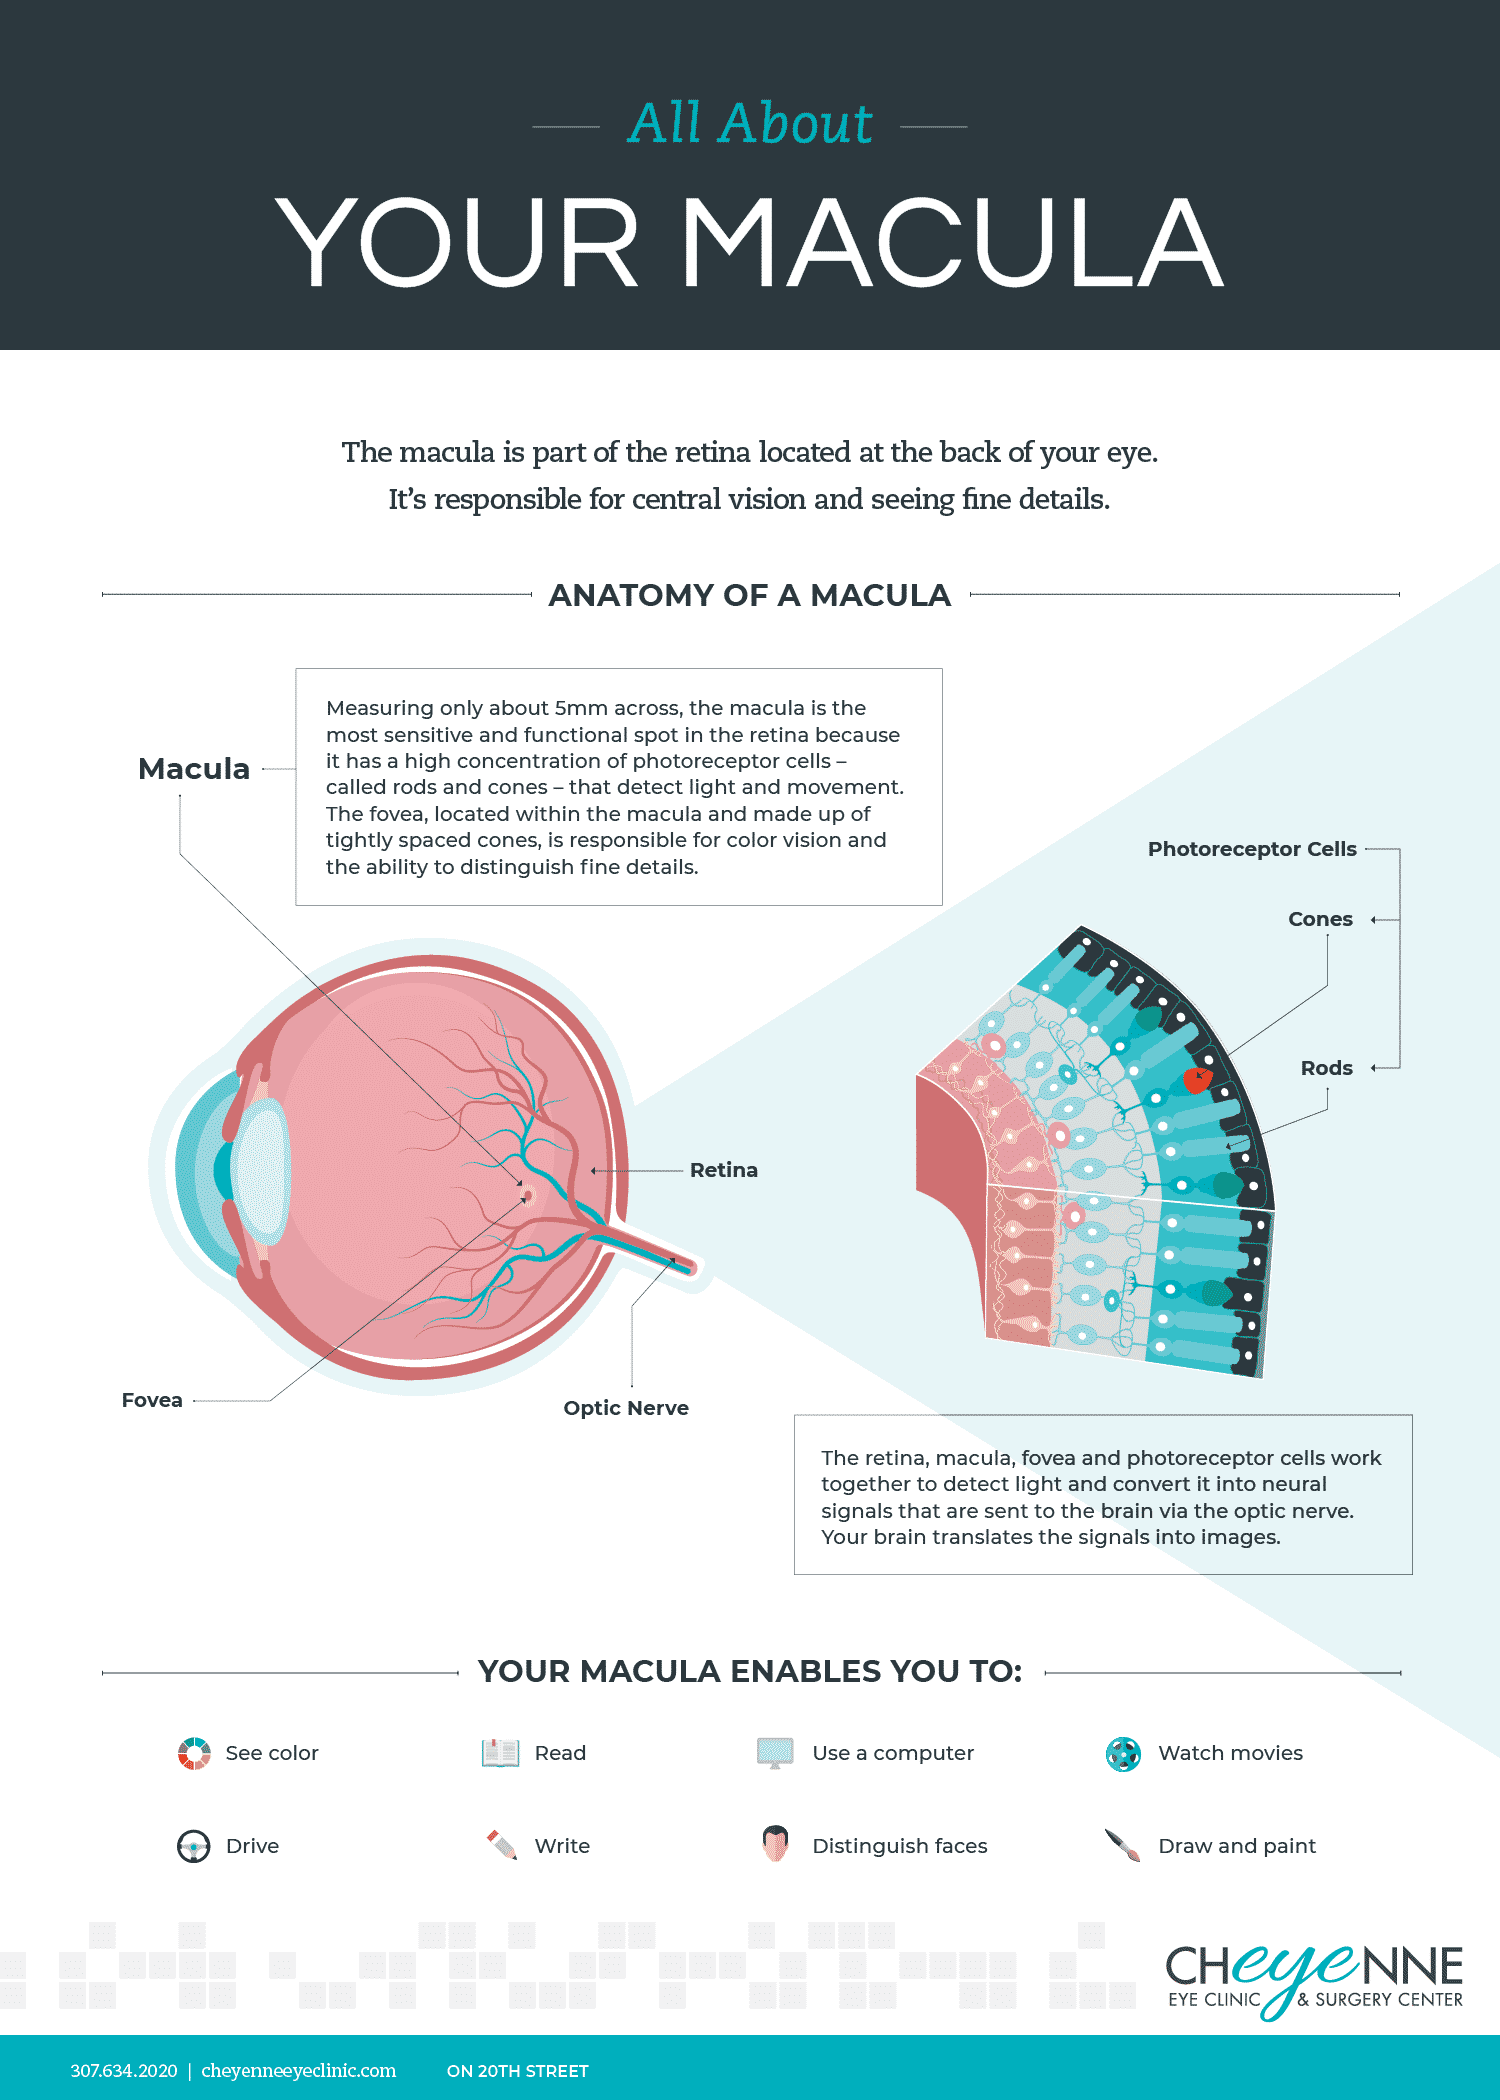 all about your macula infographic